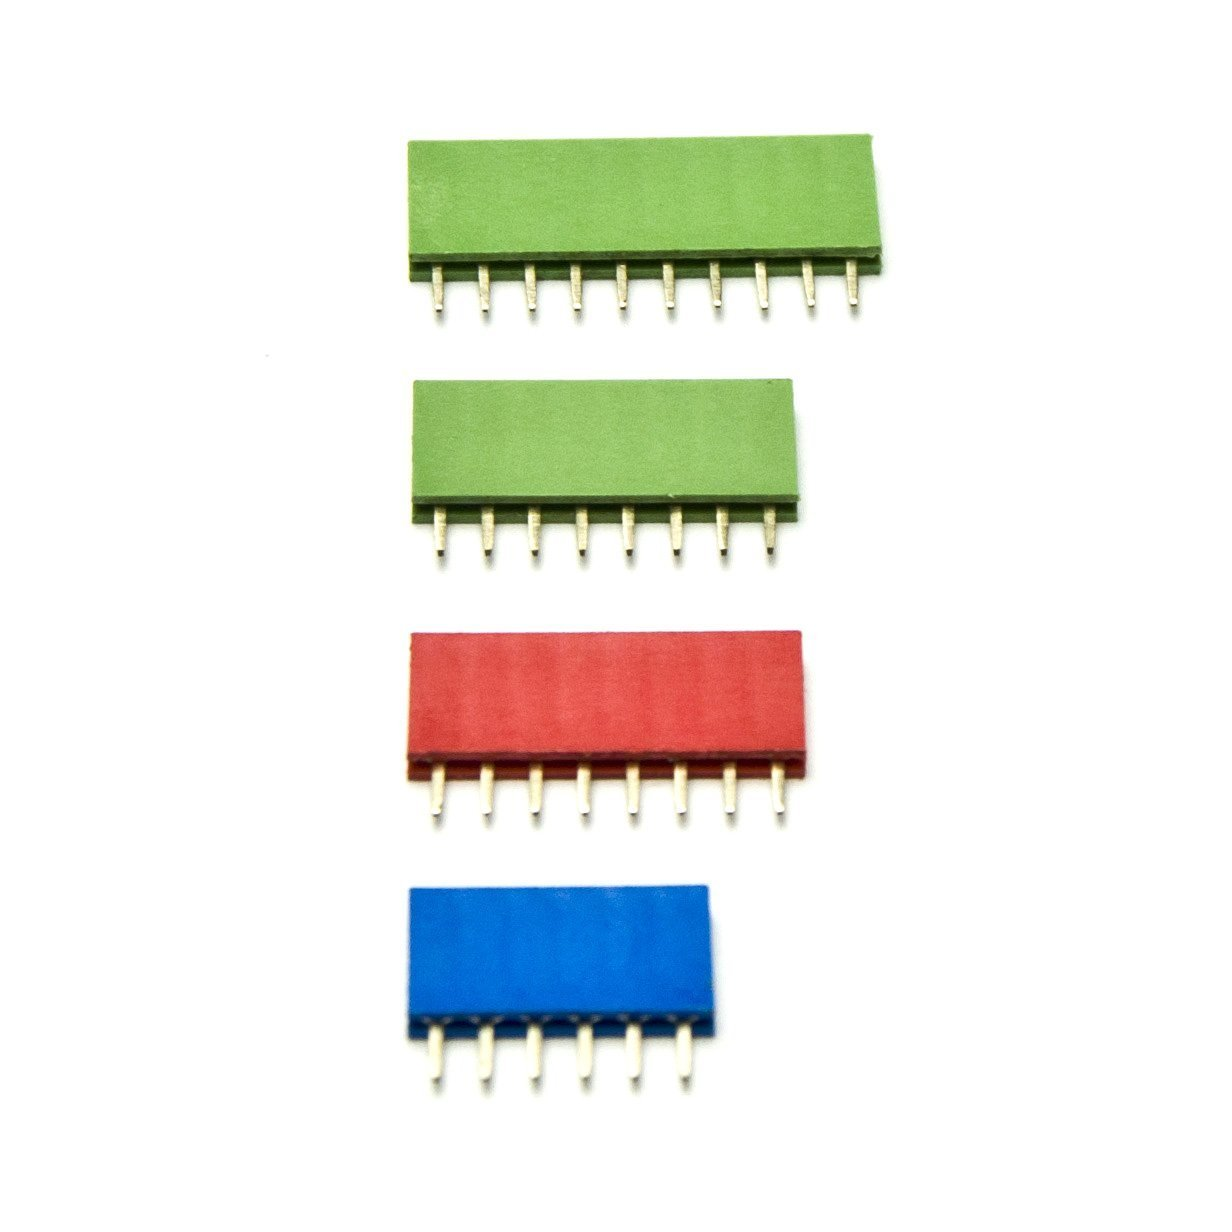 Angelelec DIY Open Sources Electronic Components, RGB Color FeMAle Header Connector, First Uses 3 Colors to Clearly Indicate the Roles That Pin Headers Play: Green - Digital Blue - Analog Red - Power